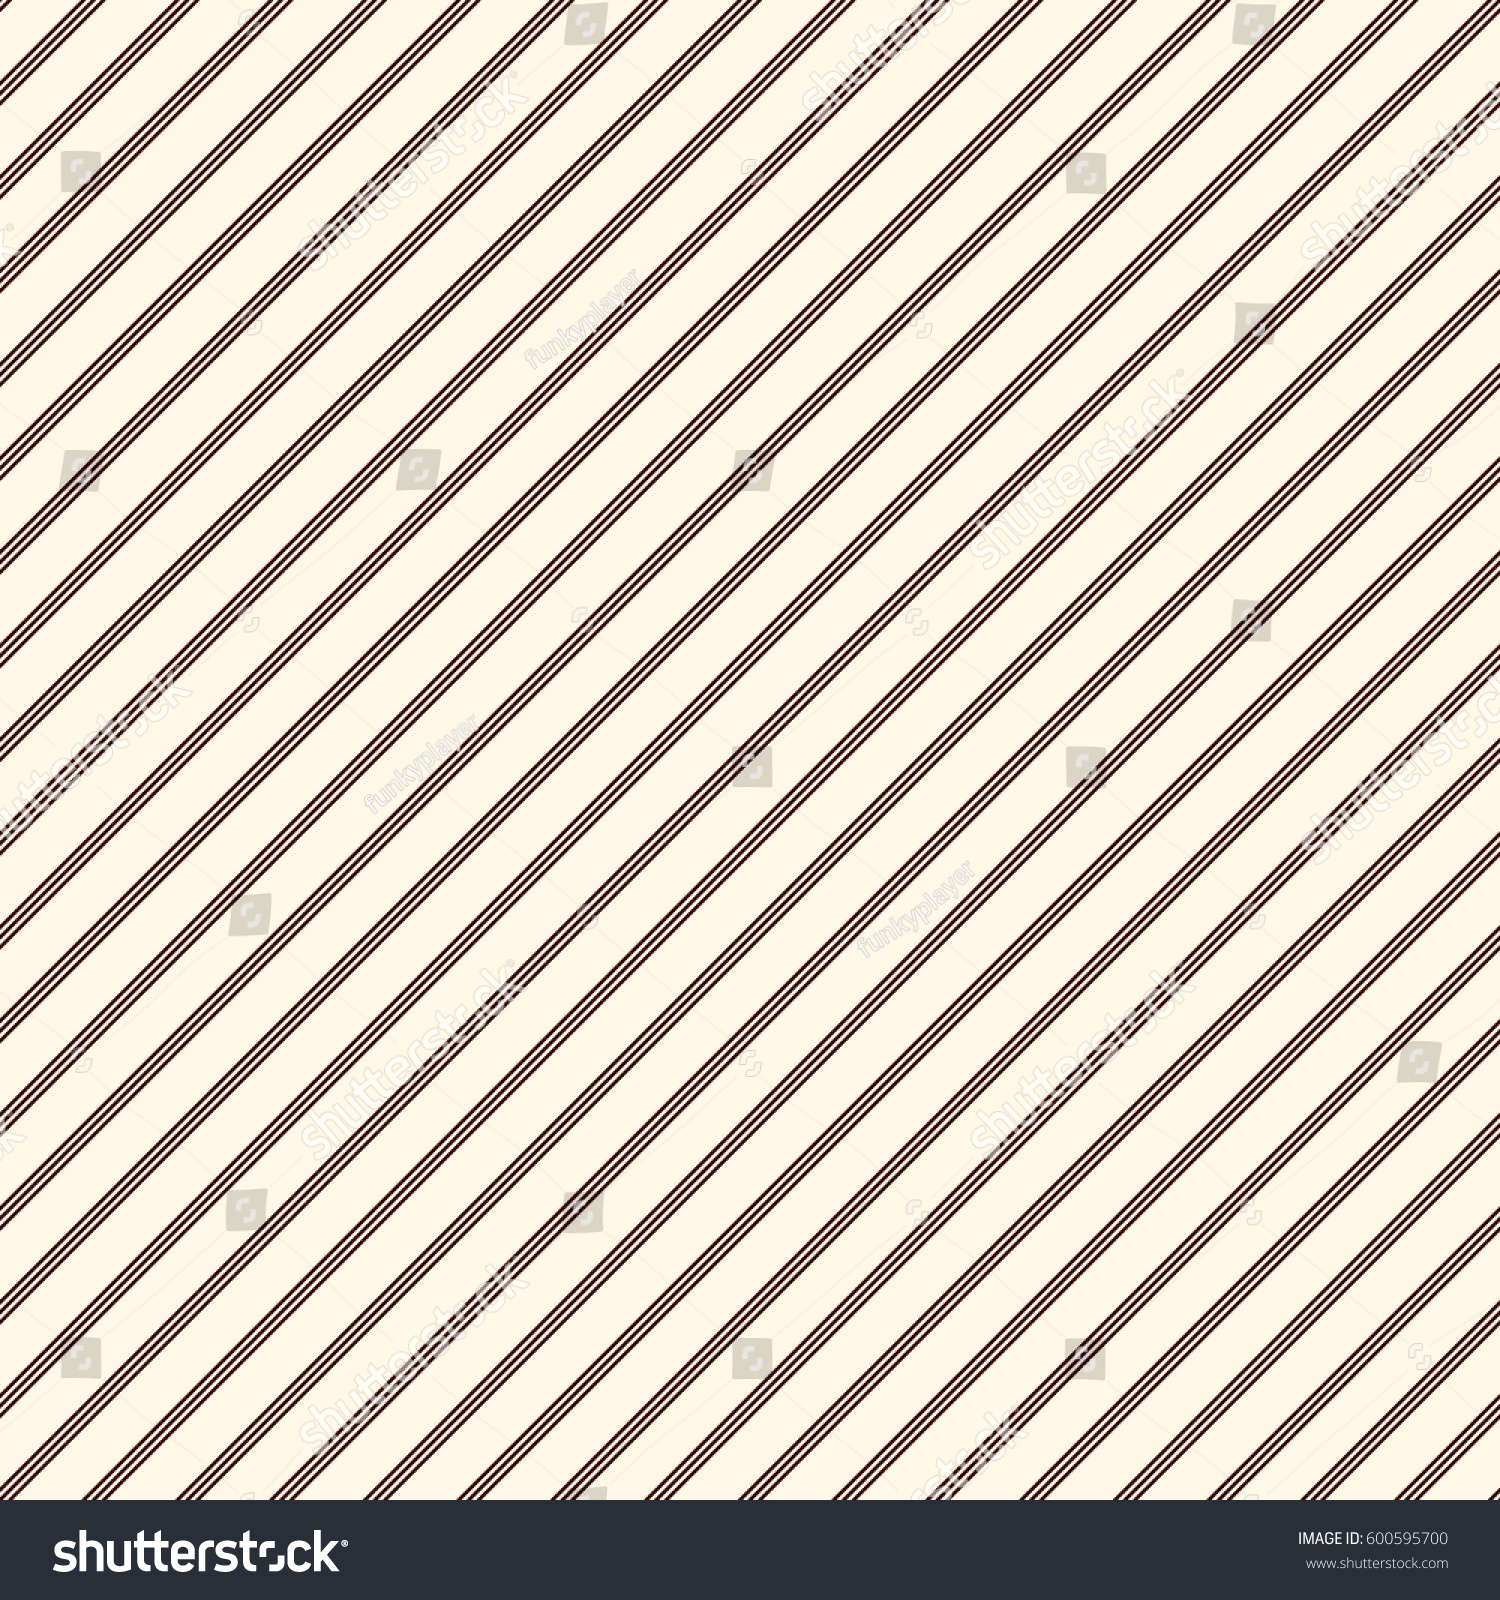 Line Texture Seamless : Outline diagonal stripes abstract background thin stock